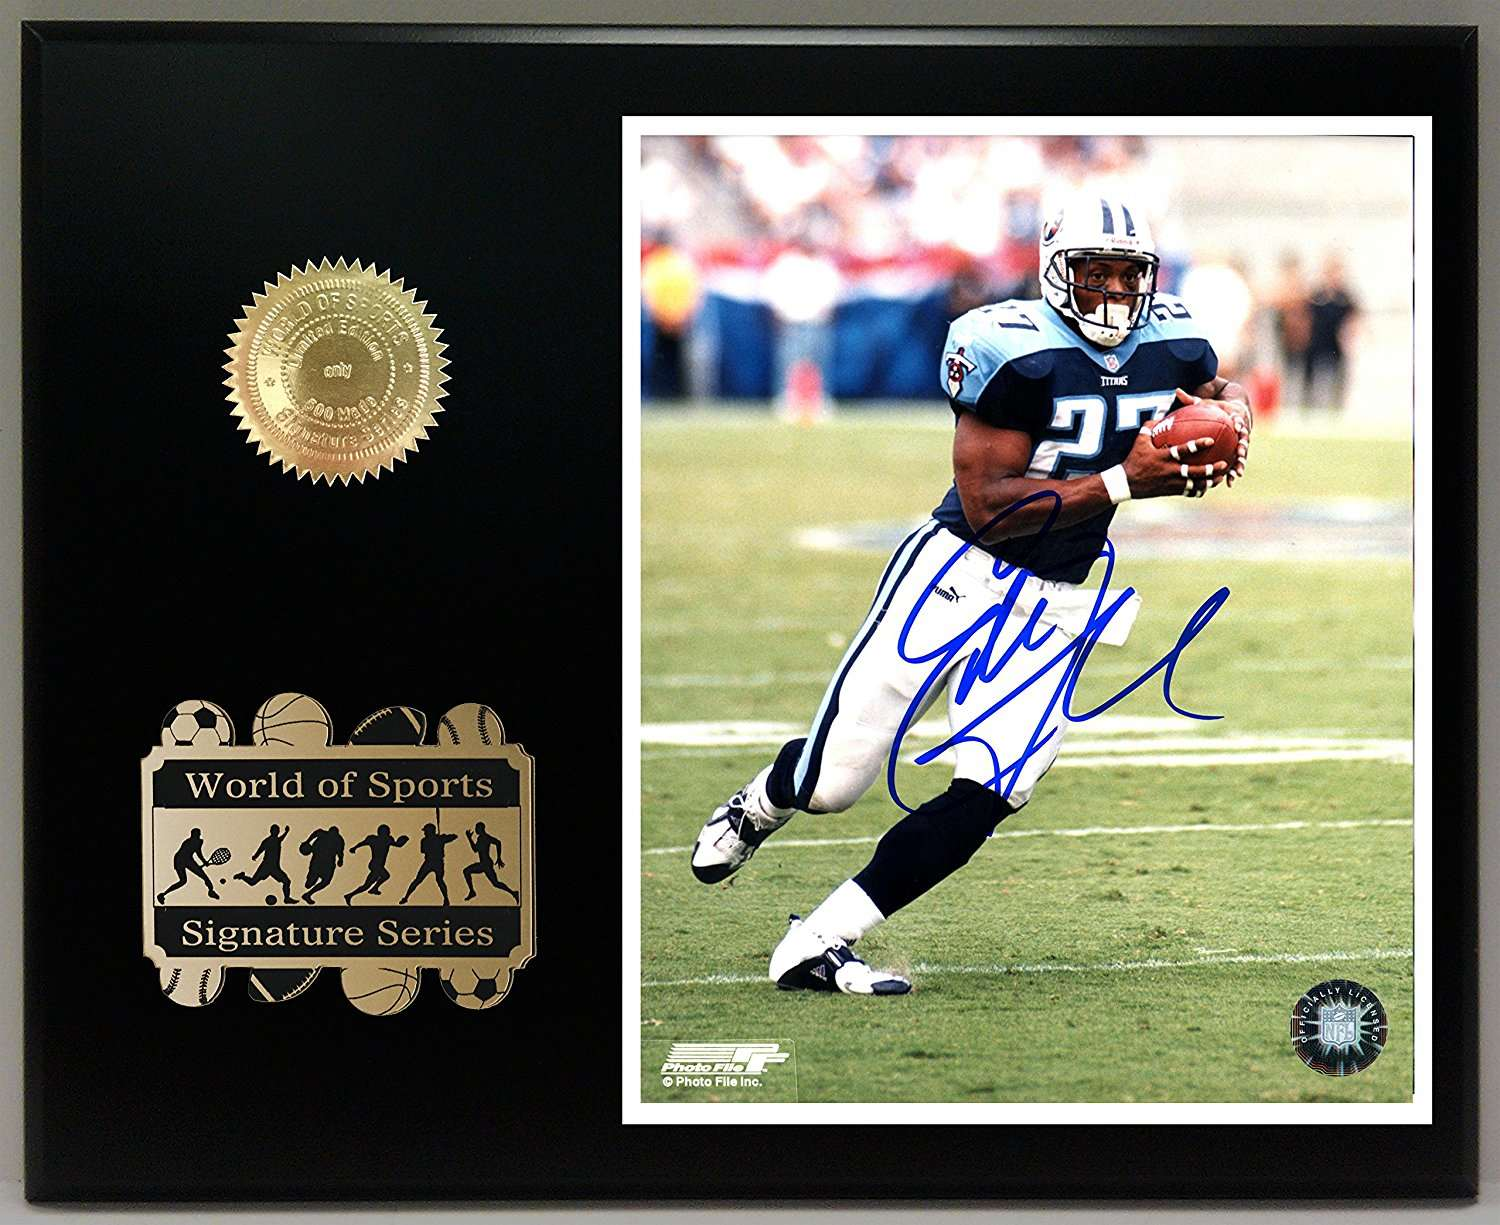 reputable site a3267 921d6 Eddie George Ltd. Edition Sports Reproduction Signature Display